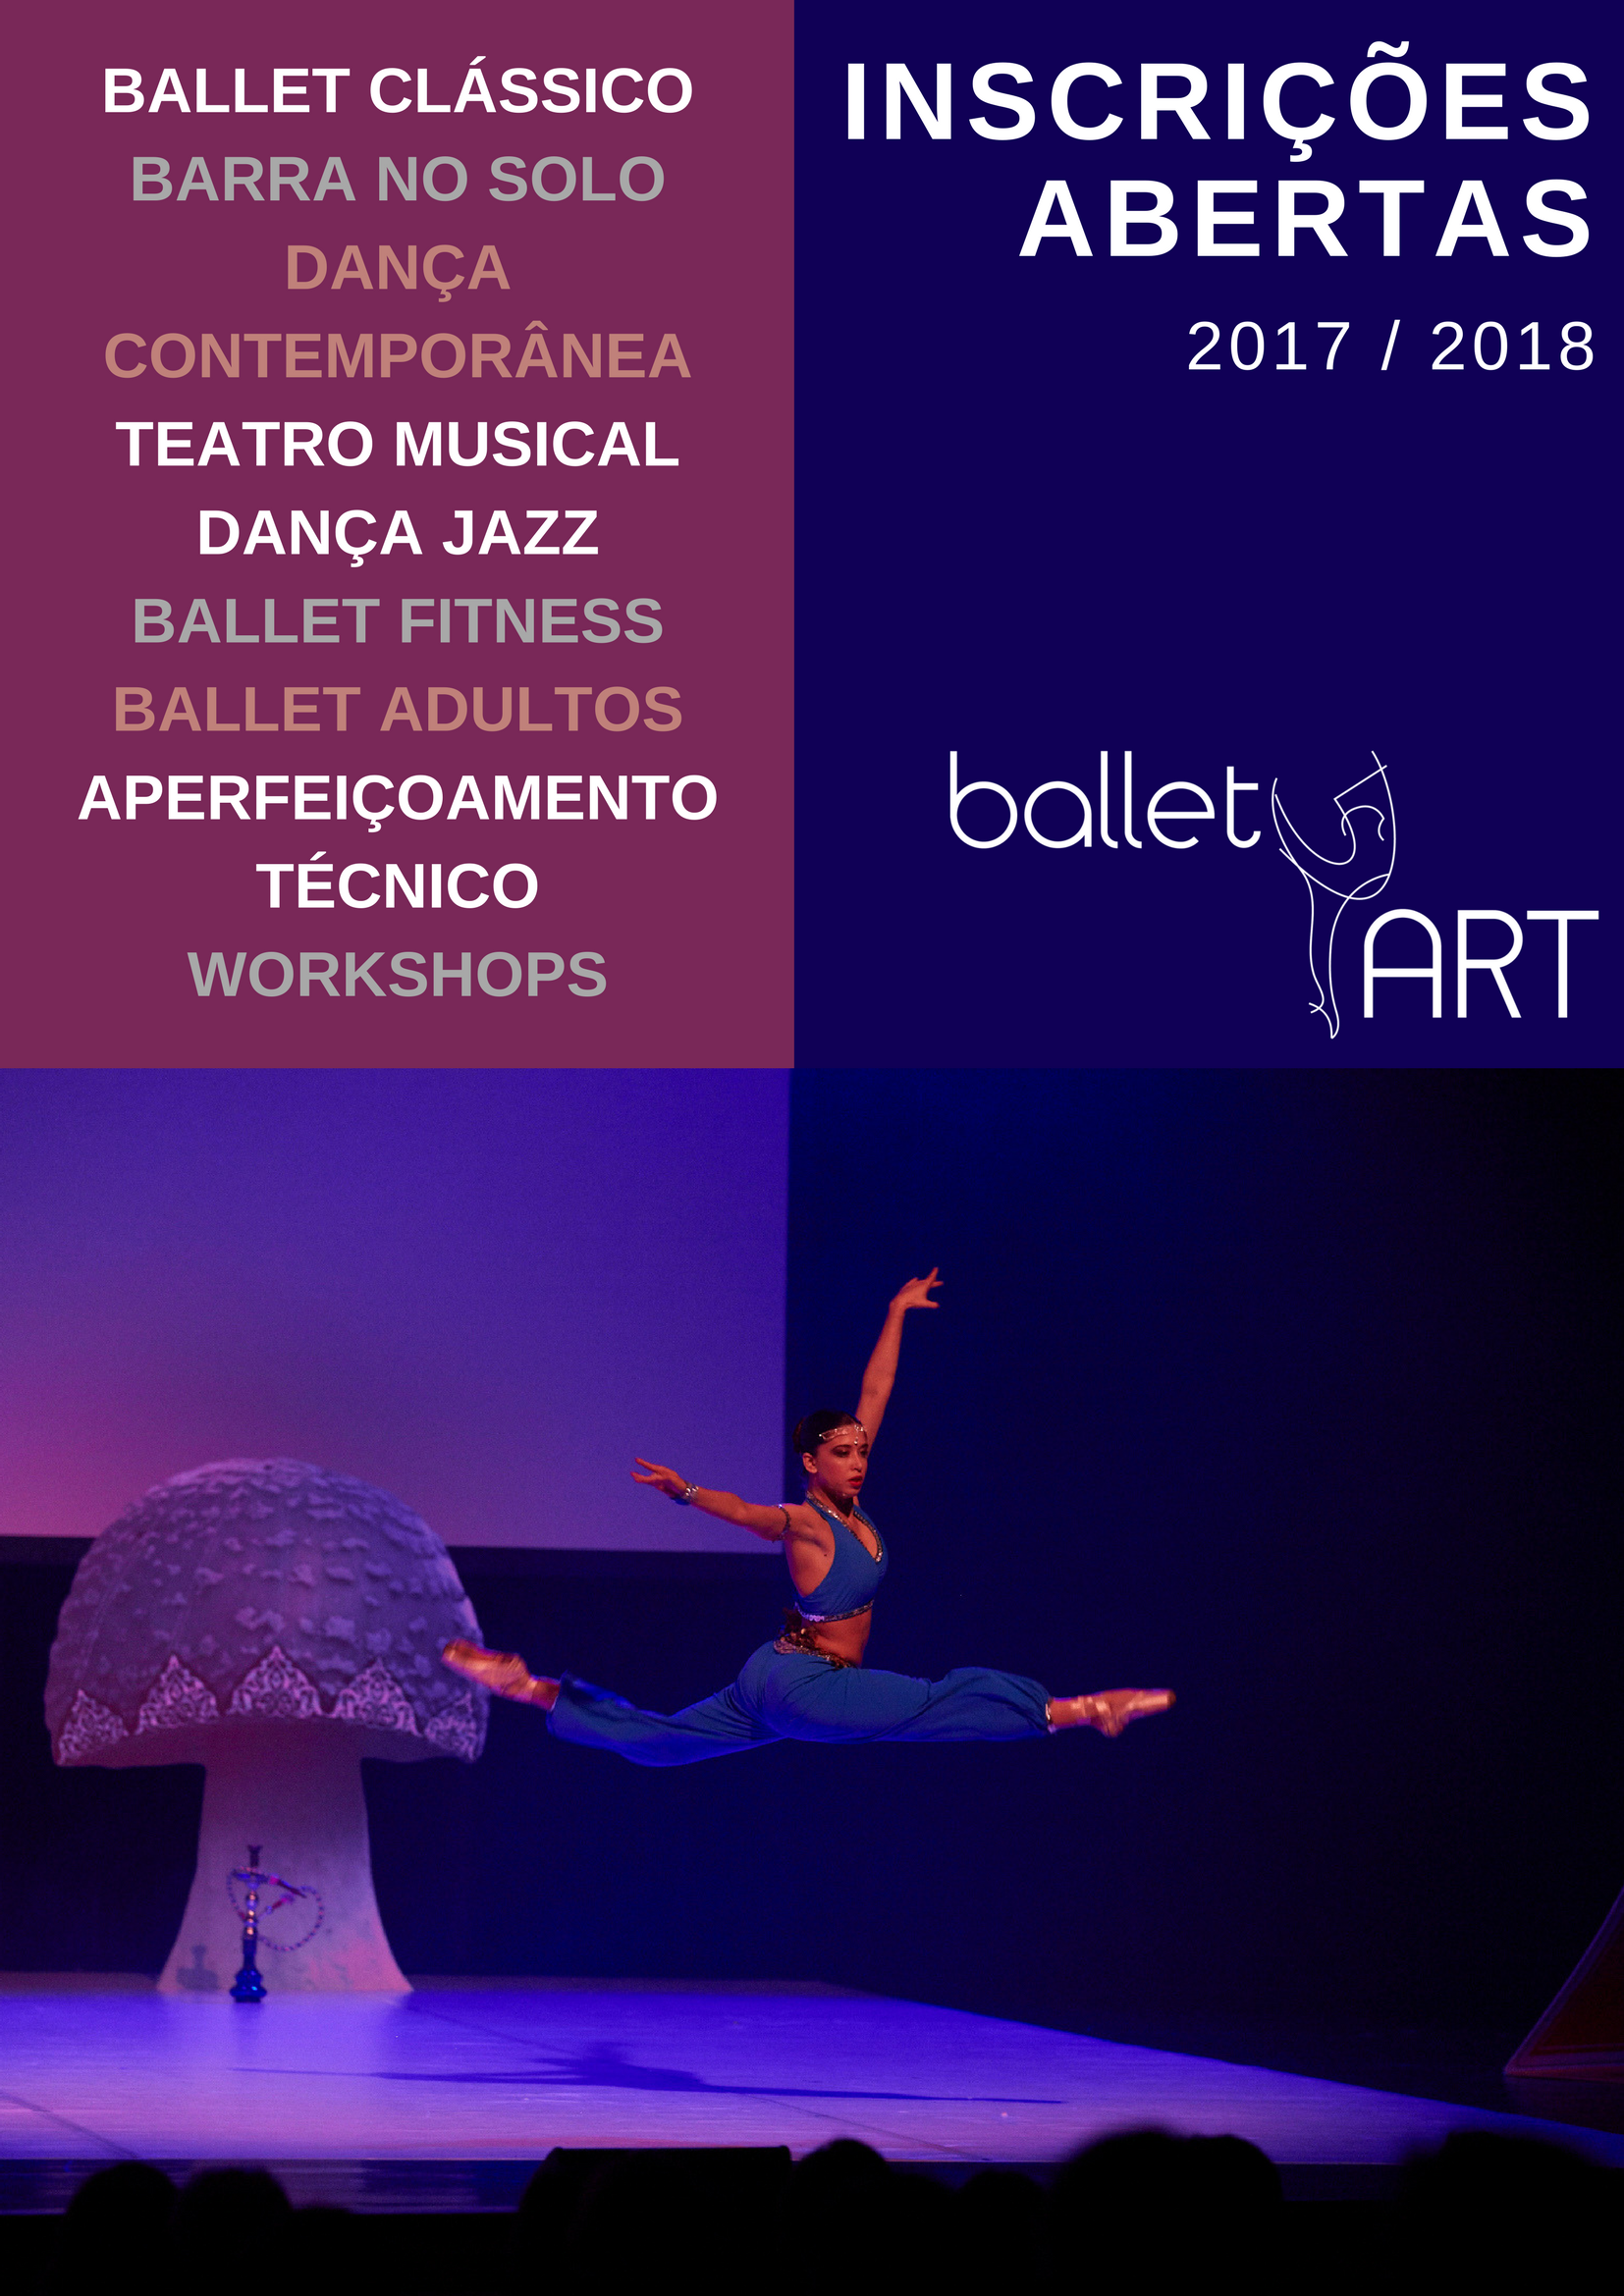 Ballet Art Cartaz 20172018